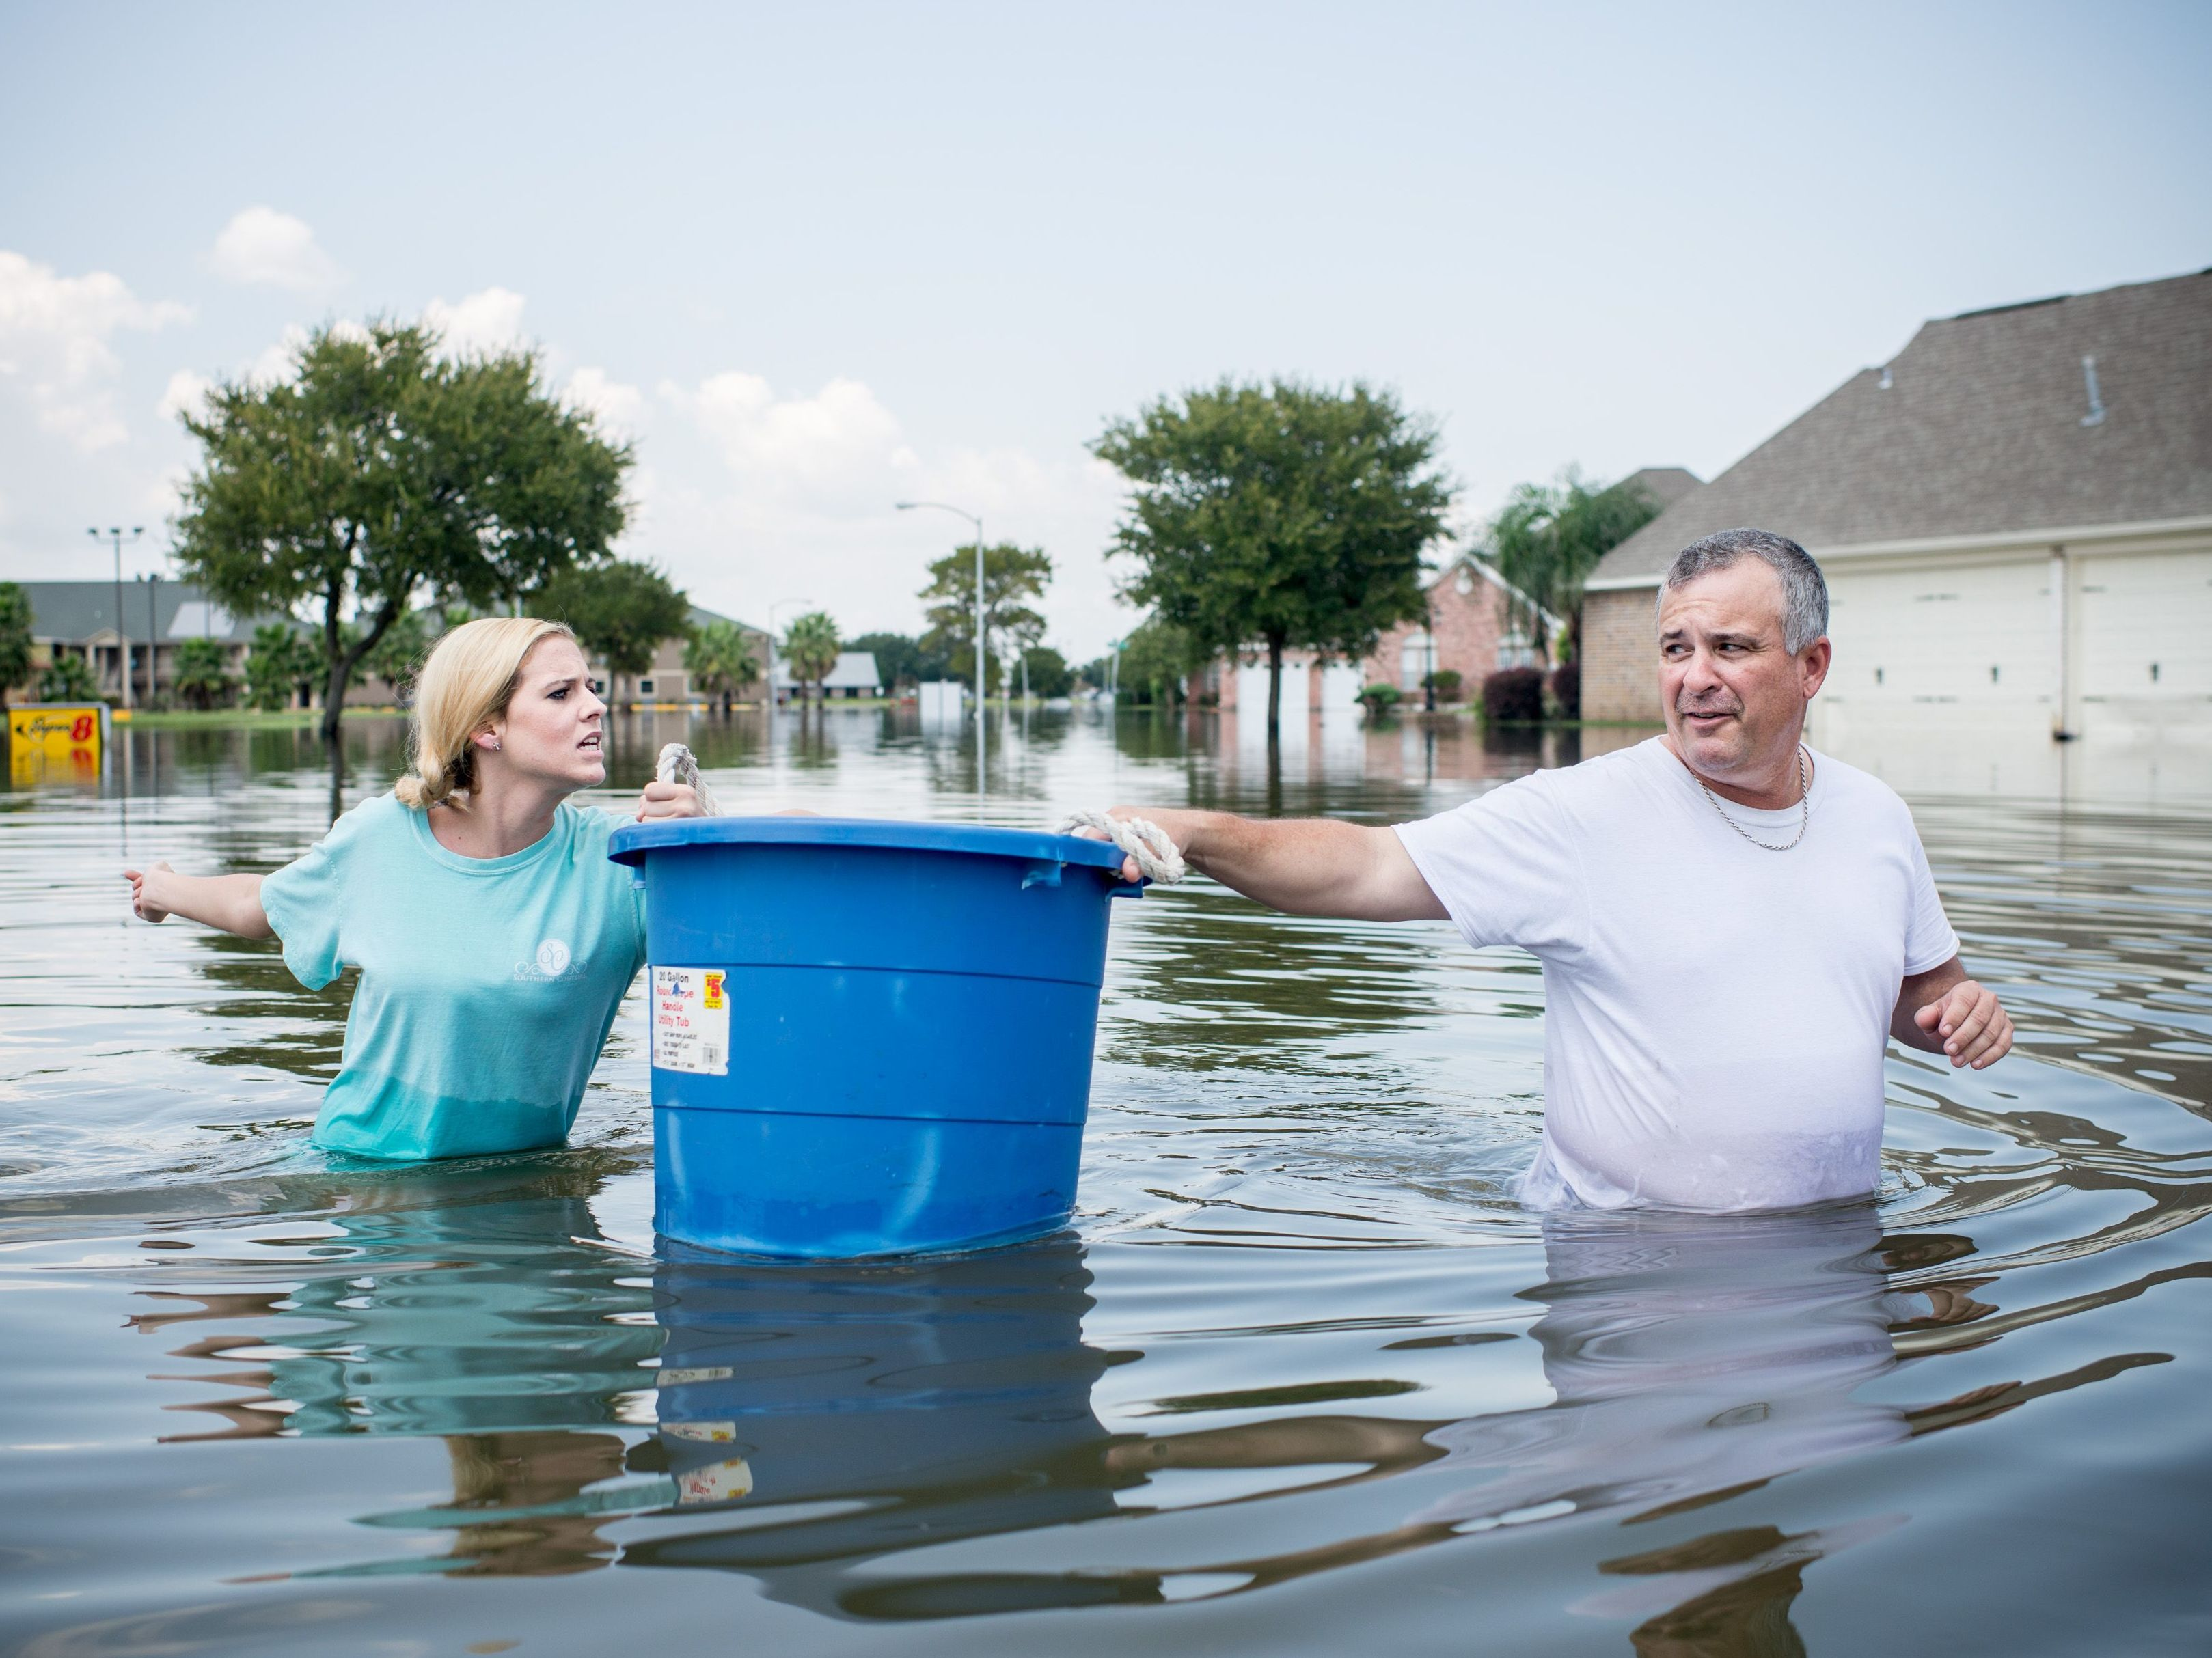 Hurricane Harvey put vast swaths of Texas under water. Elsewhere, fires, tornadoes and extreme weather caused hundreds of billions in damages.